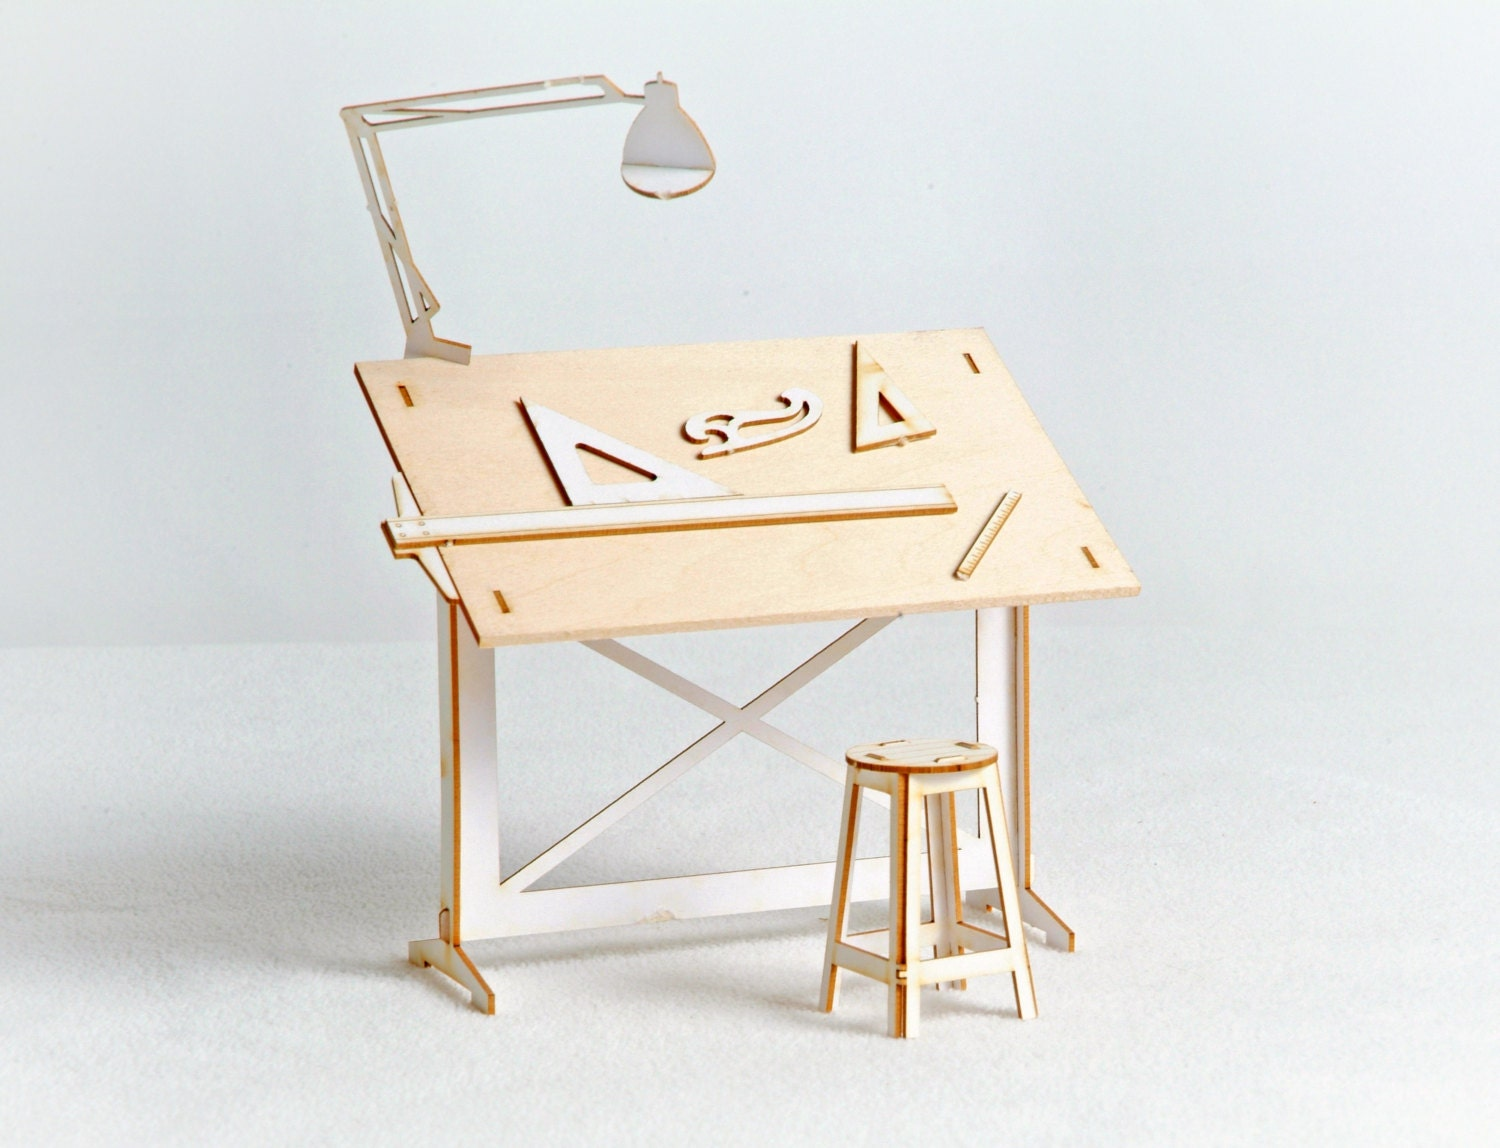 Architecture Drawing Kit miniature drafting table model kit with real wood tabletop